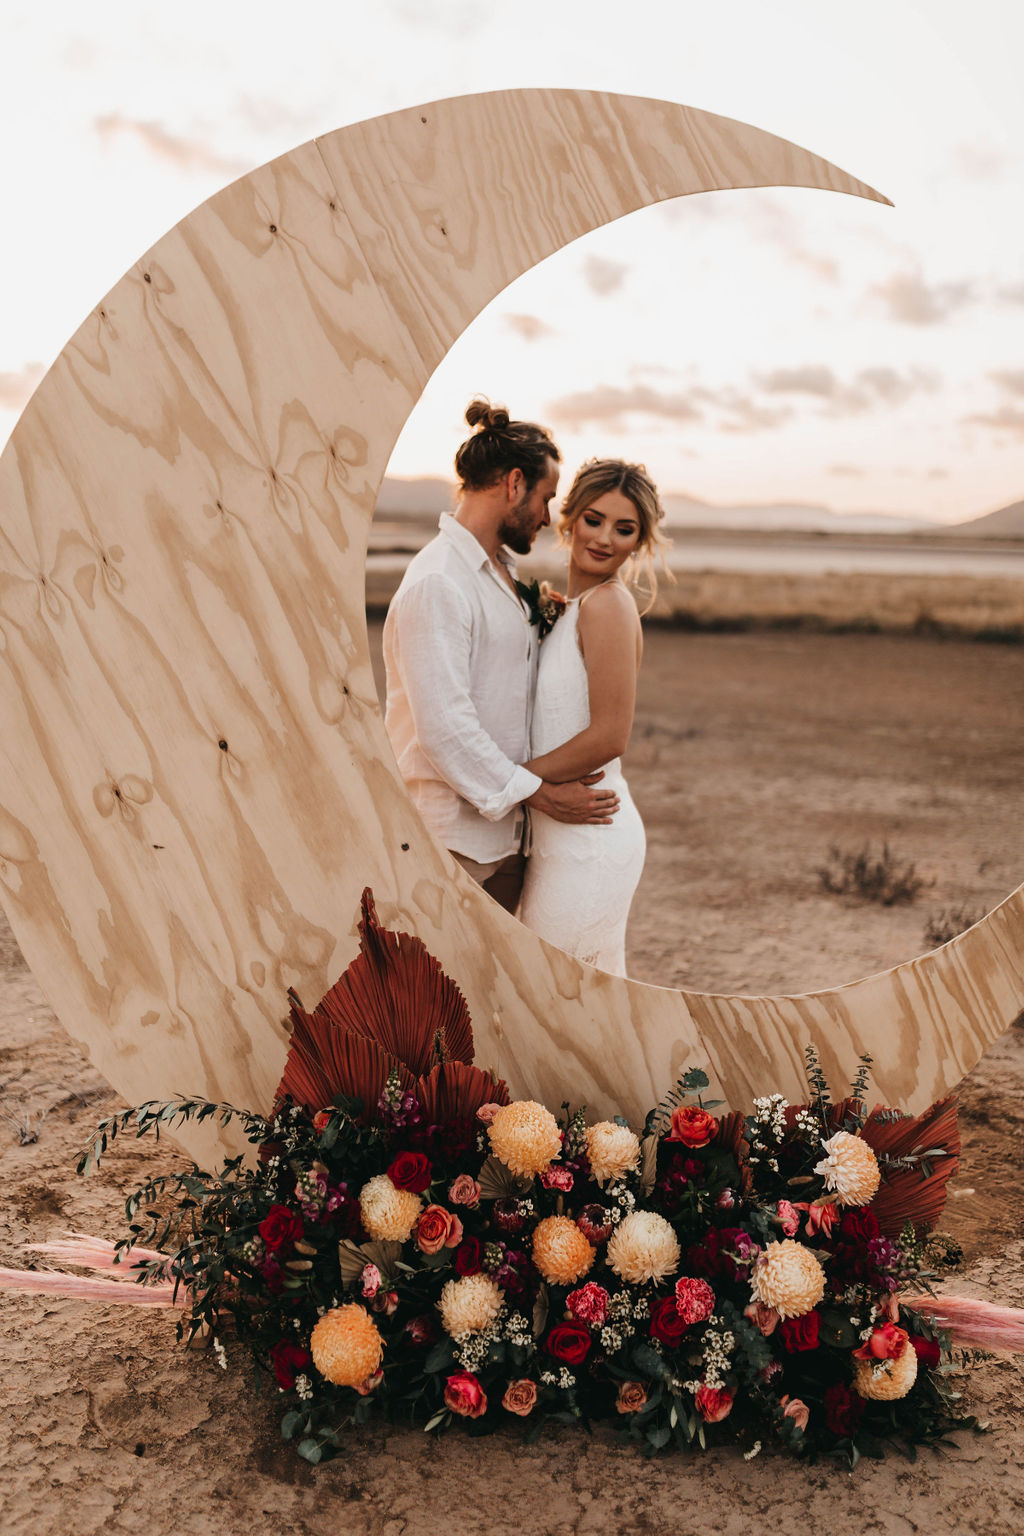 STYLED SHOOT: DREAMY BOHEMIAN DESERT ROMANCE EDITORIAL | LOVE YOU TO THE MOON + BACK TOWNSVILLE QLD